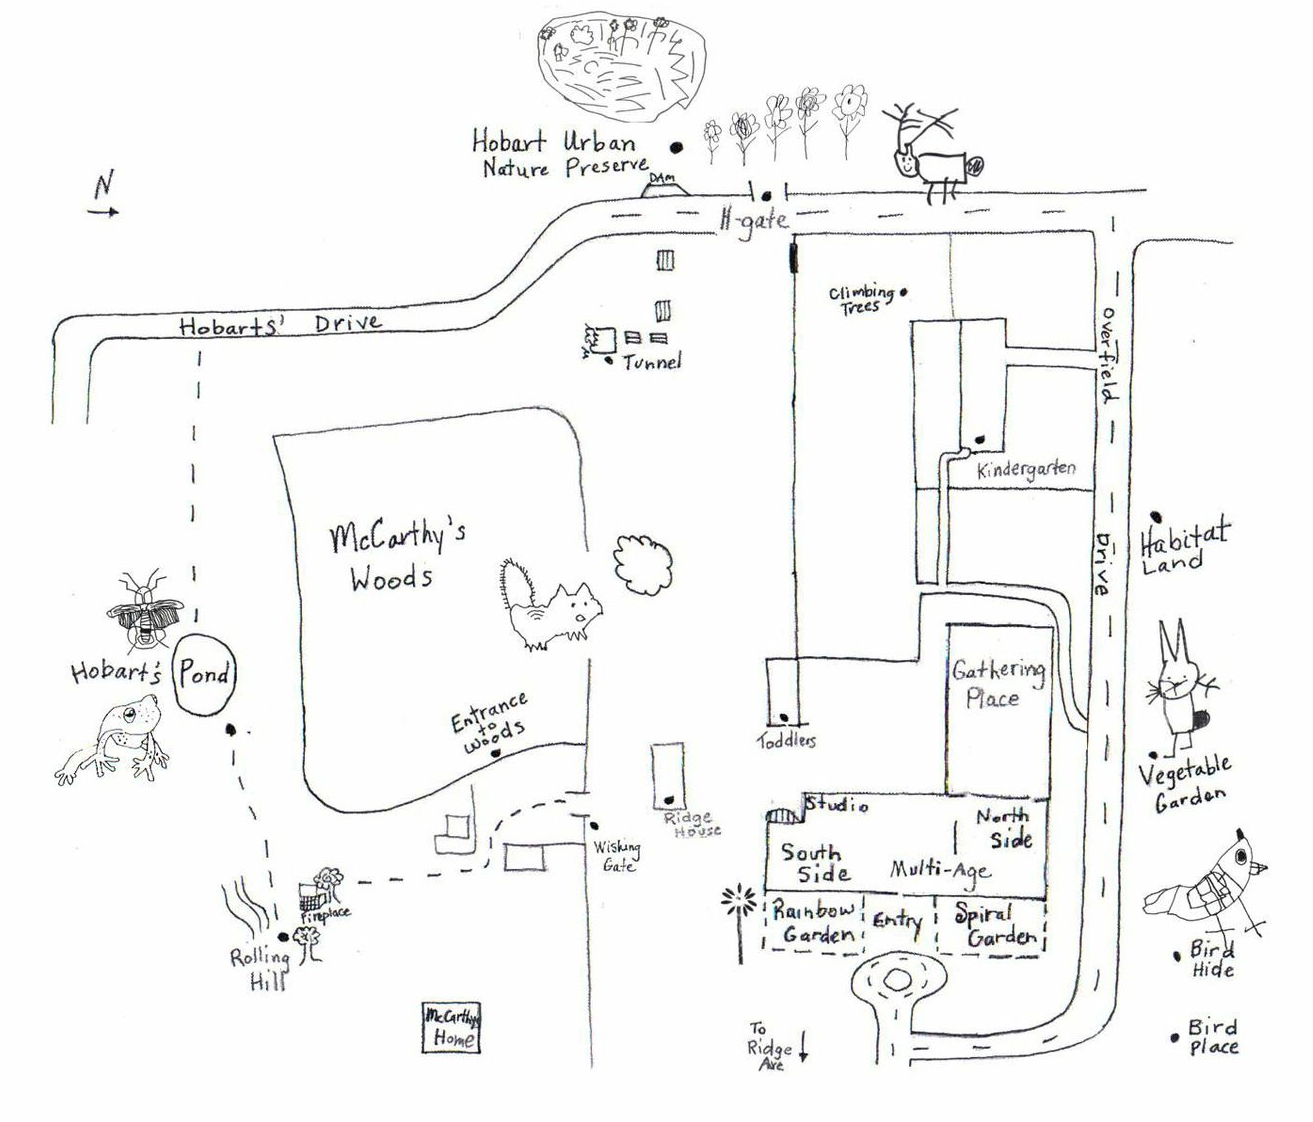 Overfield Campus Map